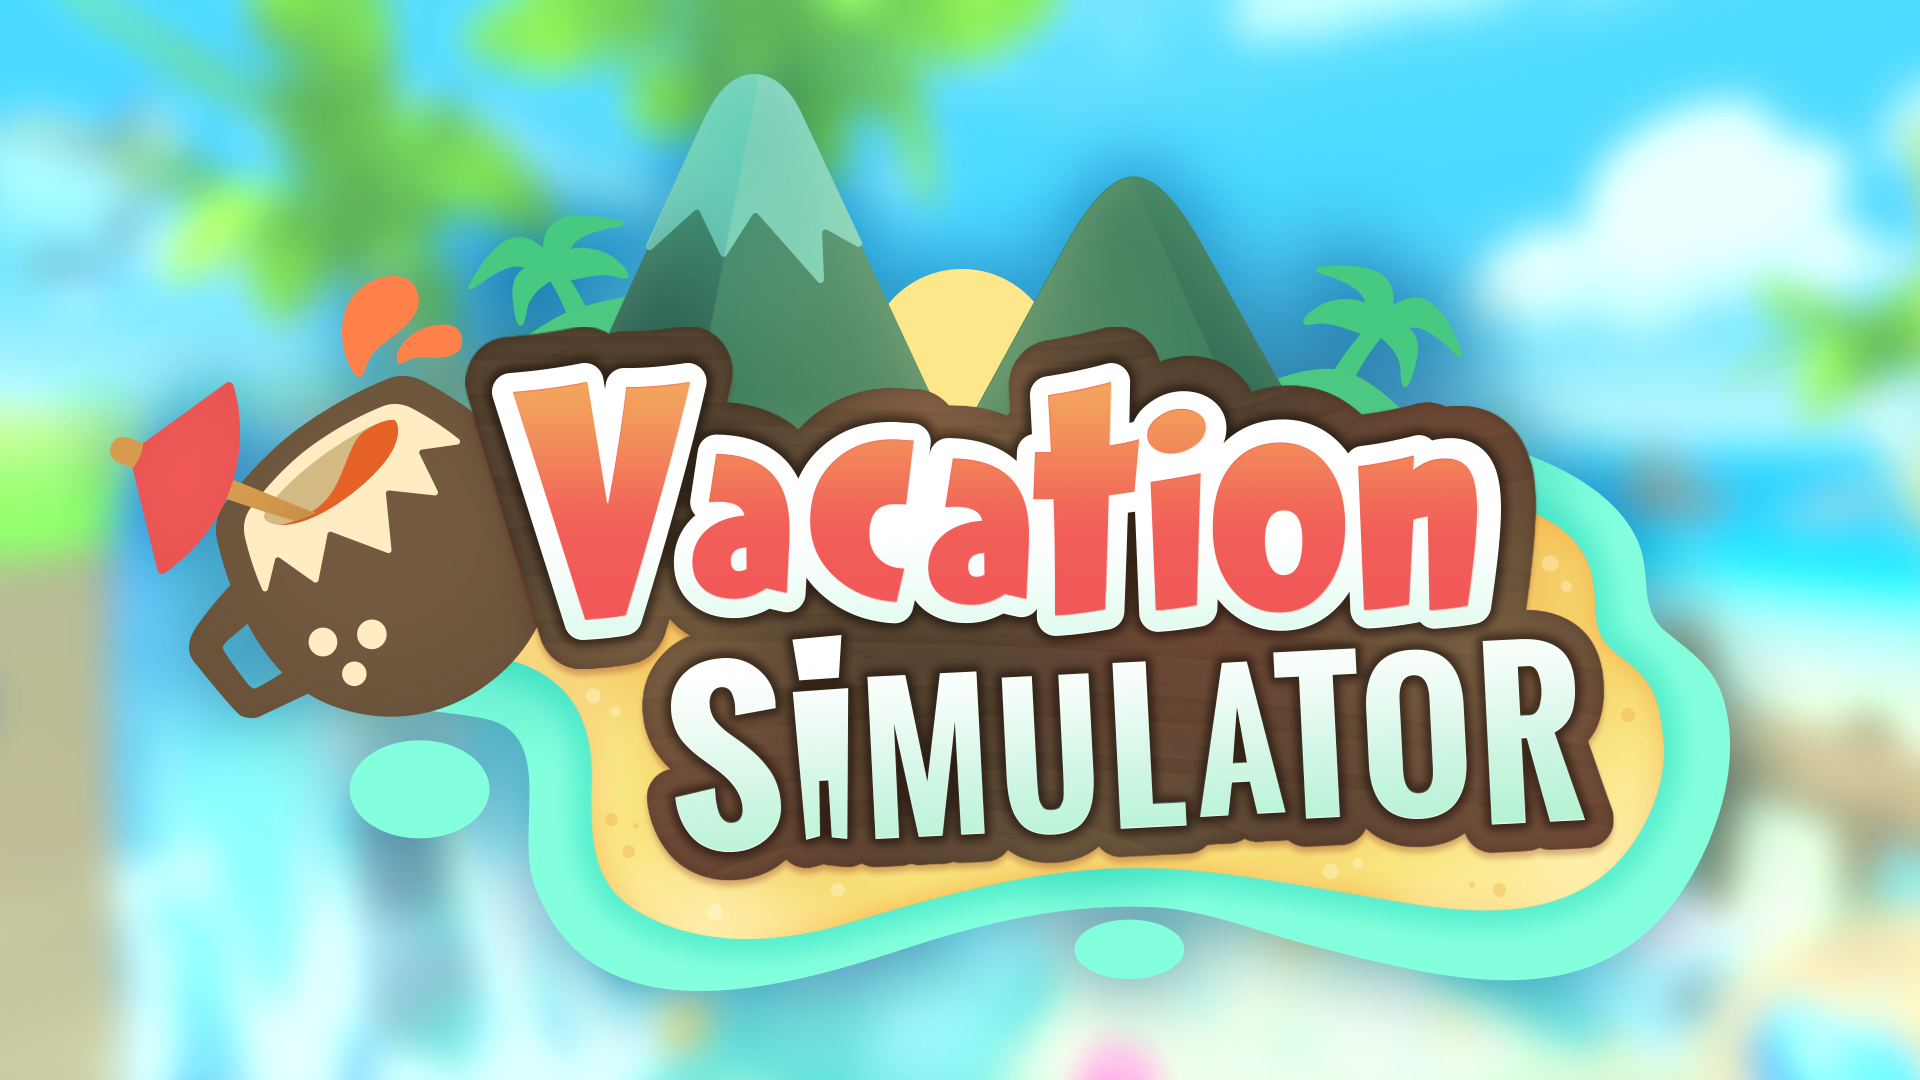 Rick And Morty VR Creators Owlchemy Labs Announces New Game Called Vacation Simulator